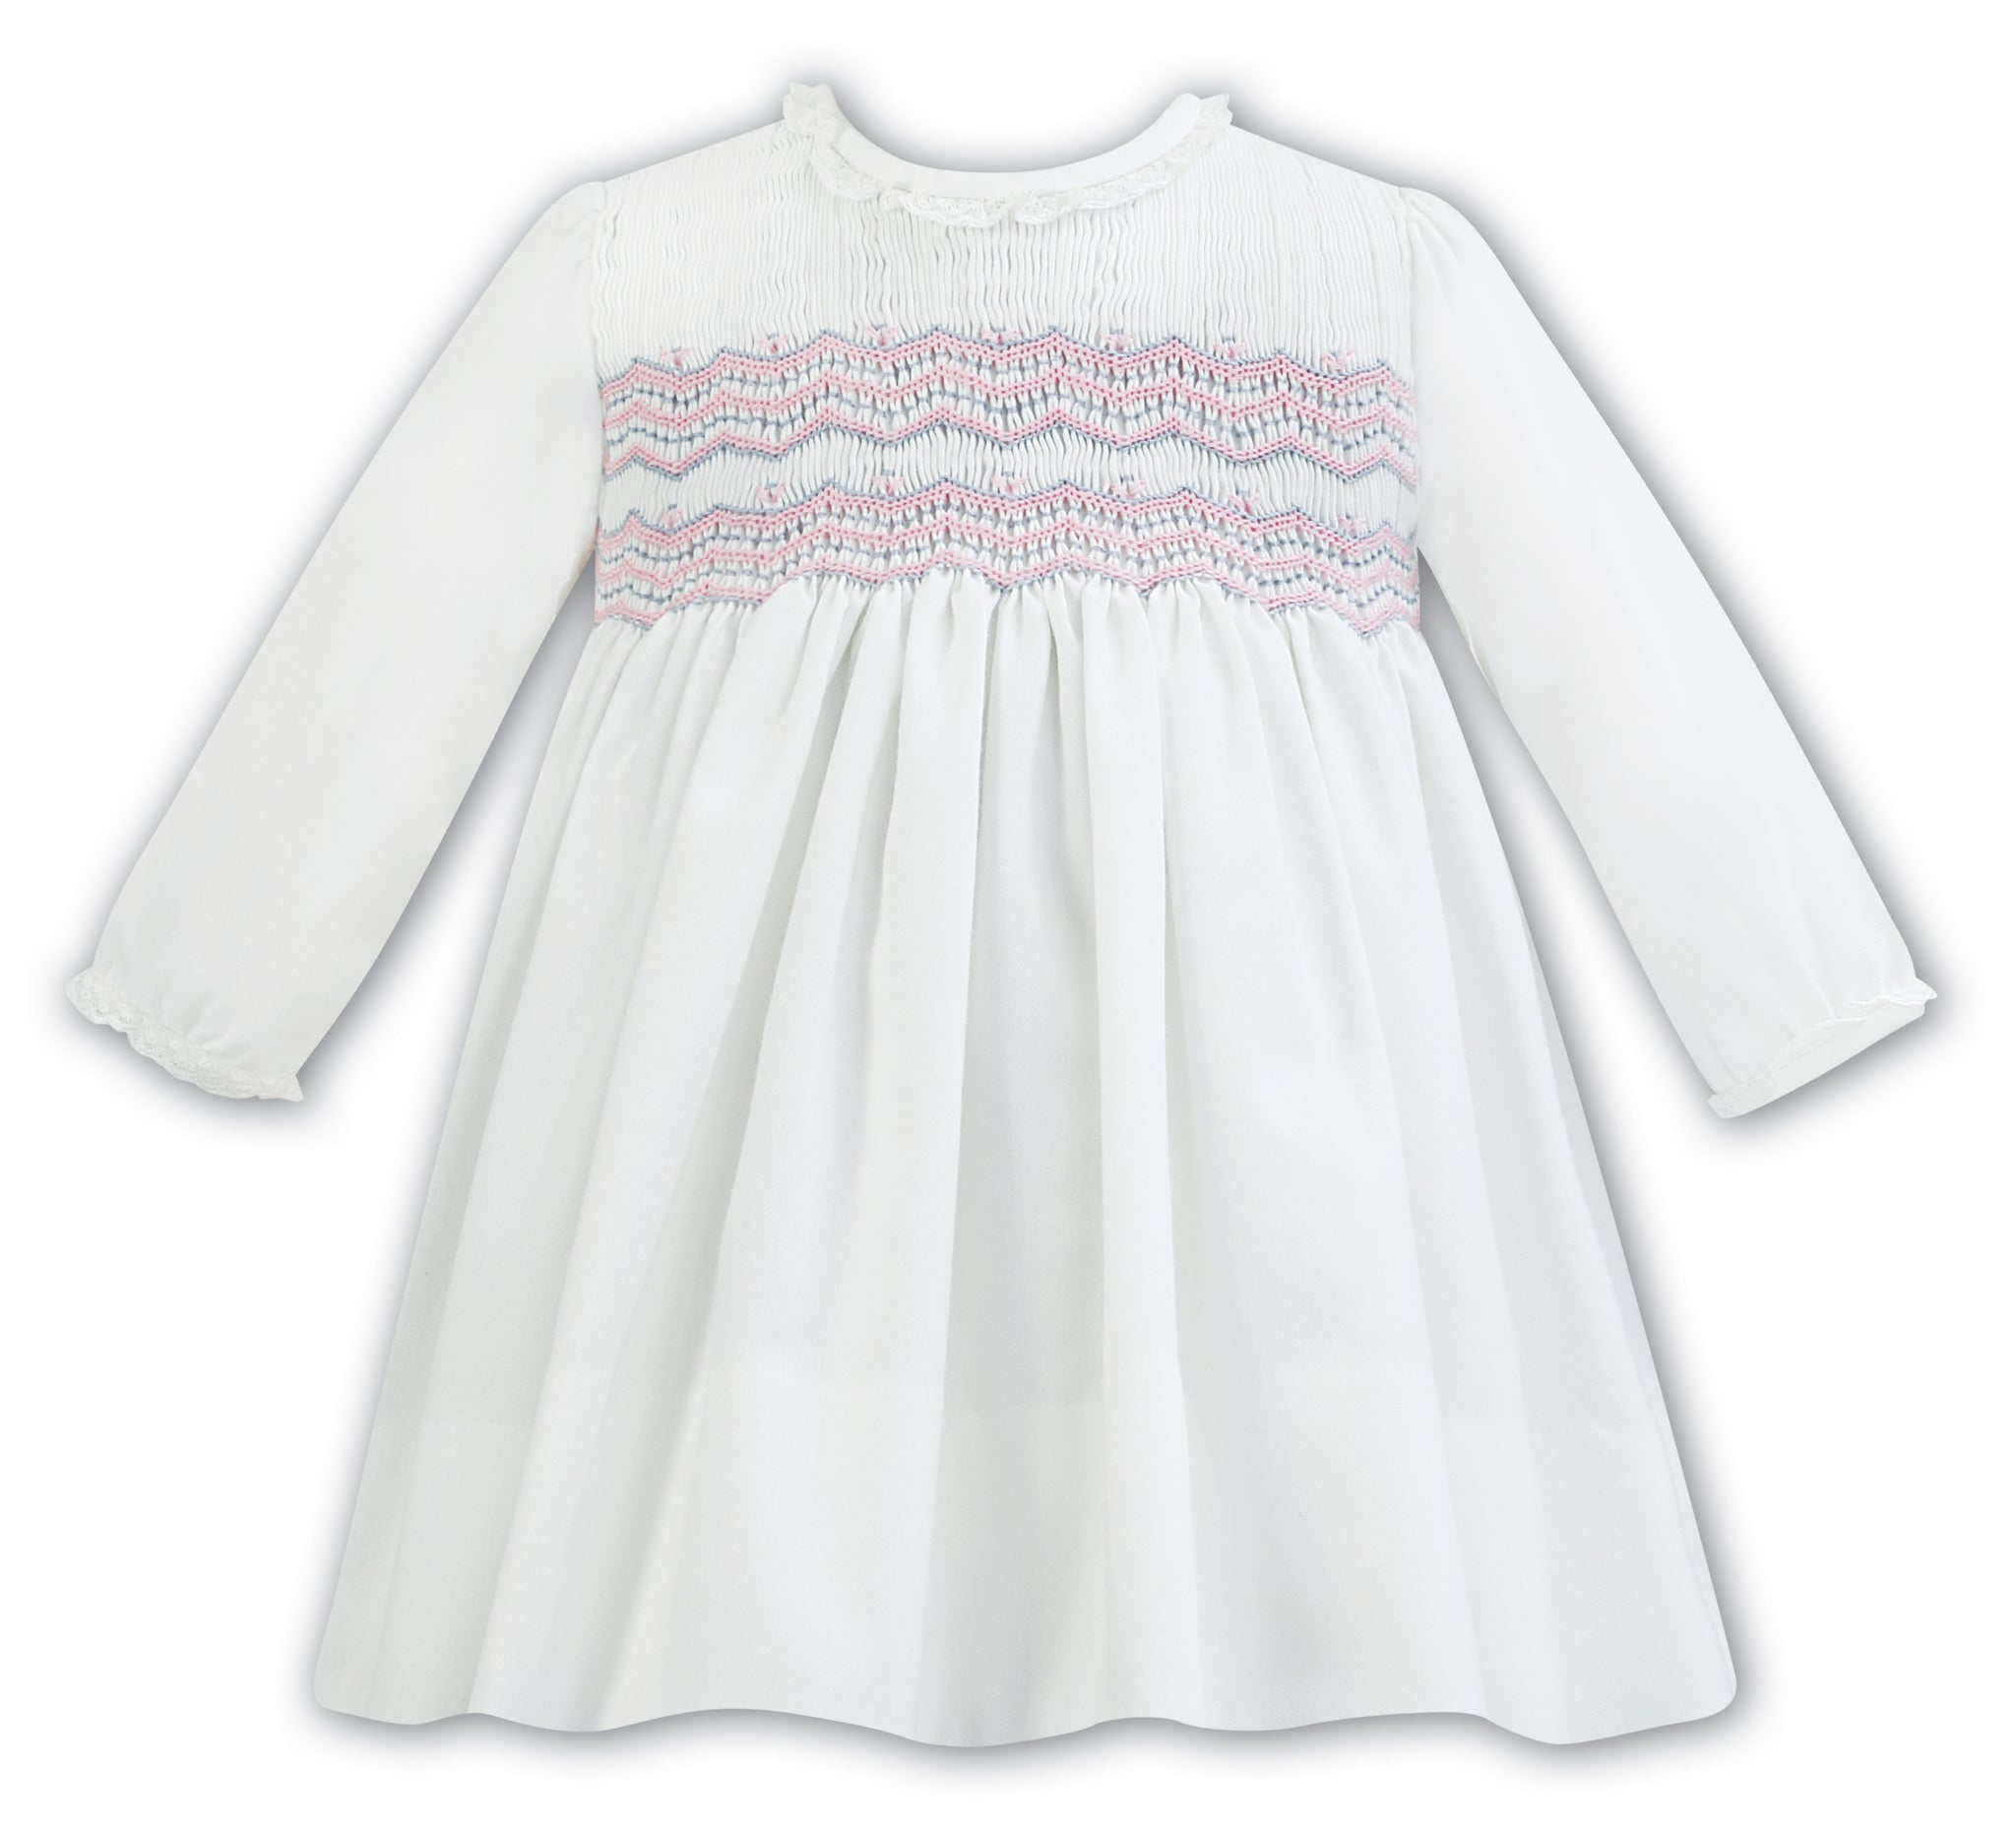 a60413bf7 New Sarah Louise 011297 Ivory/Pink Detail Dress